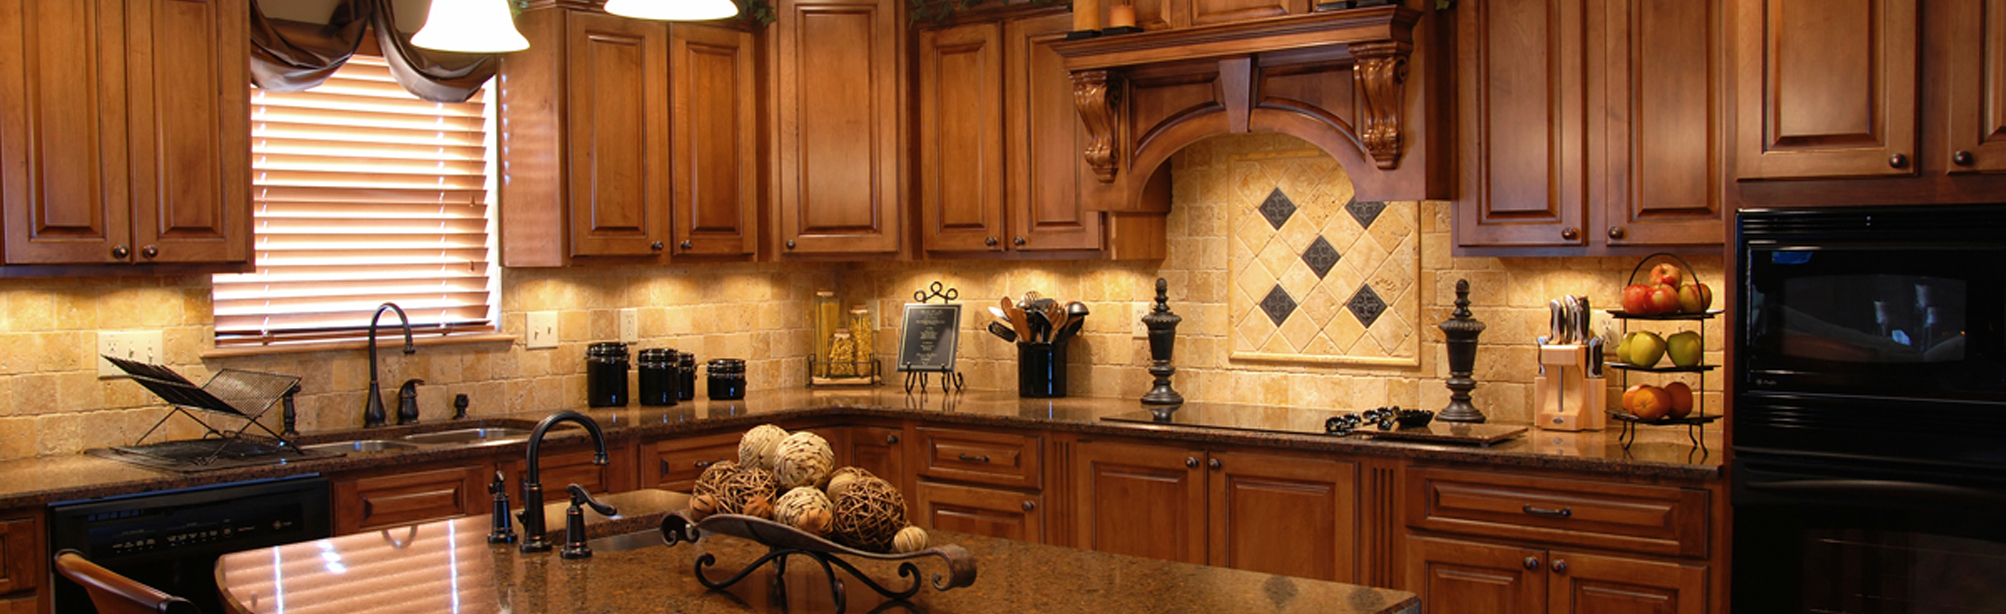 Traditional-Kitchen-Remodeling-brown-cab